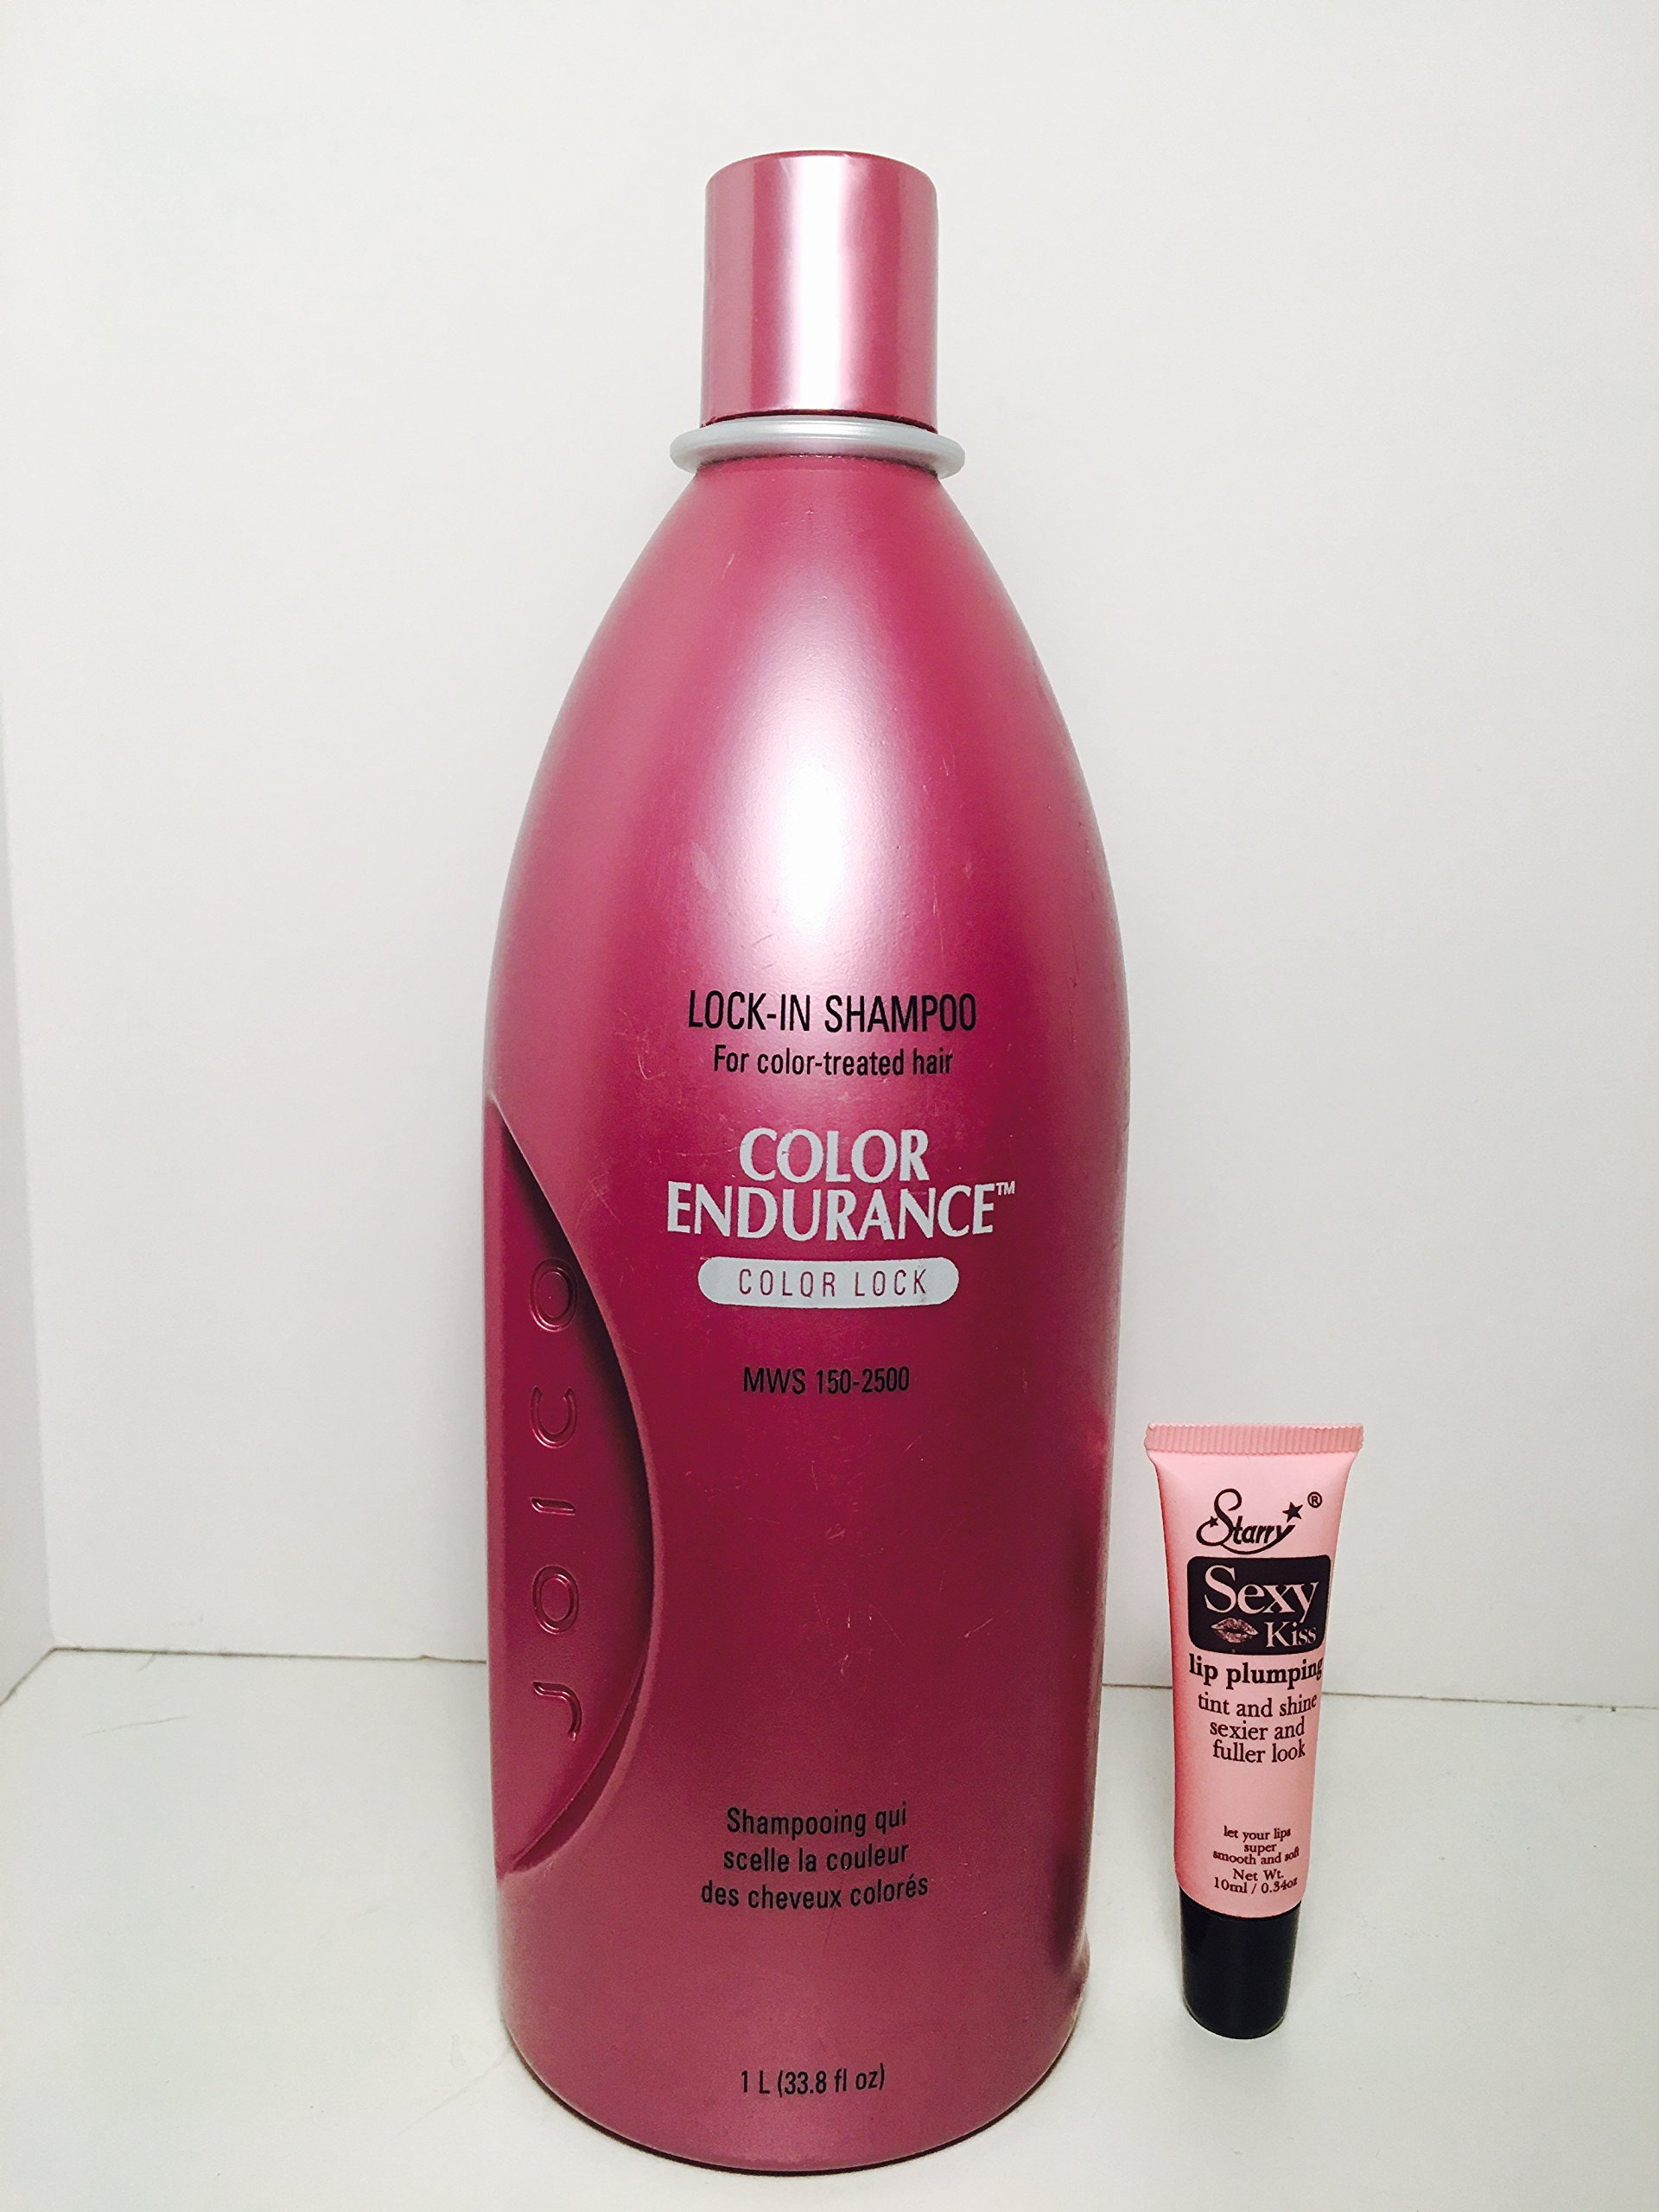 Joico Color Endurance Lock-in Shampoo for Color-treated hair (33.8oz) by J